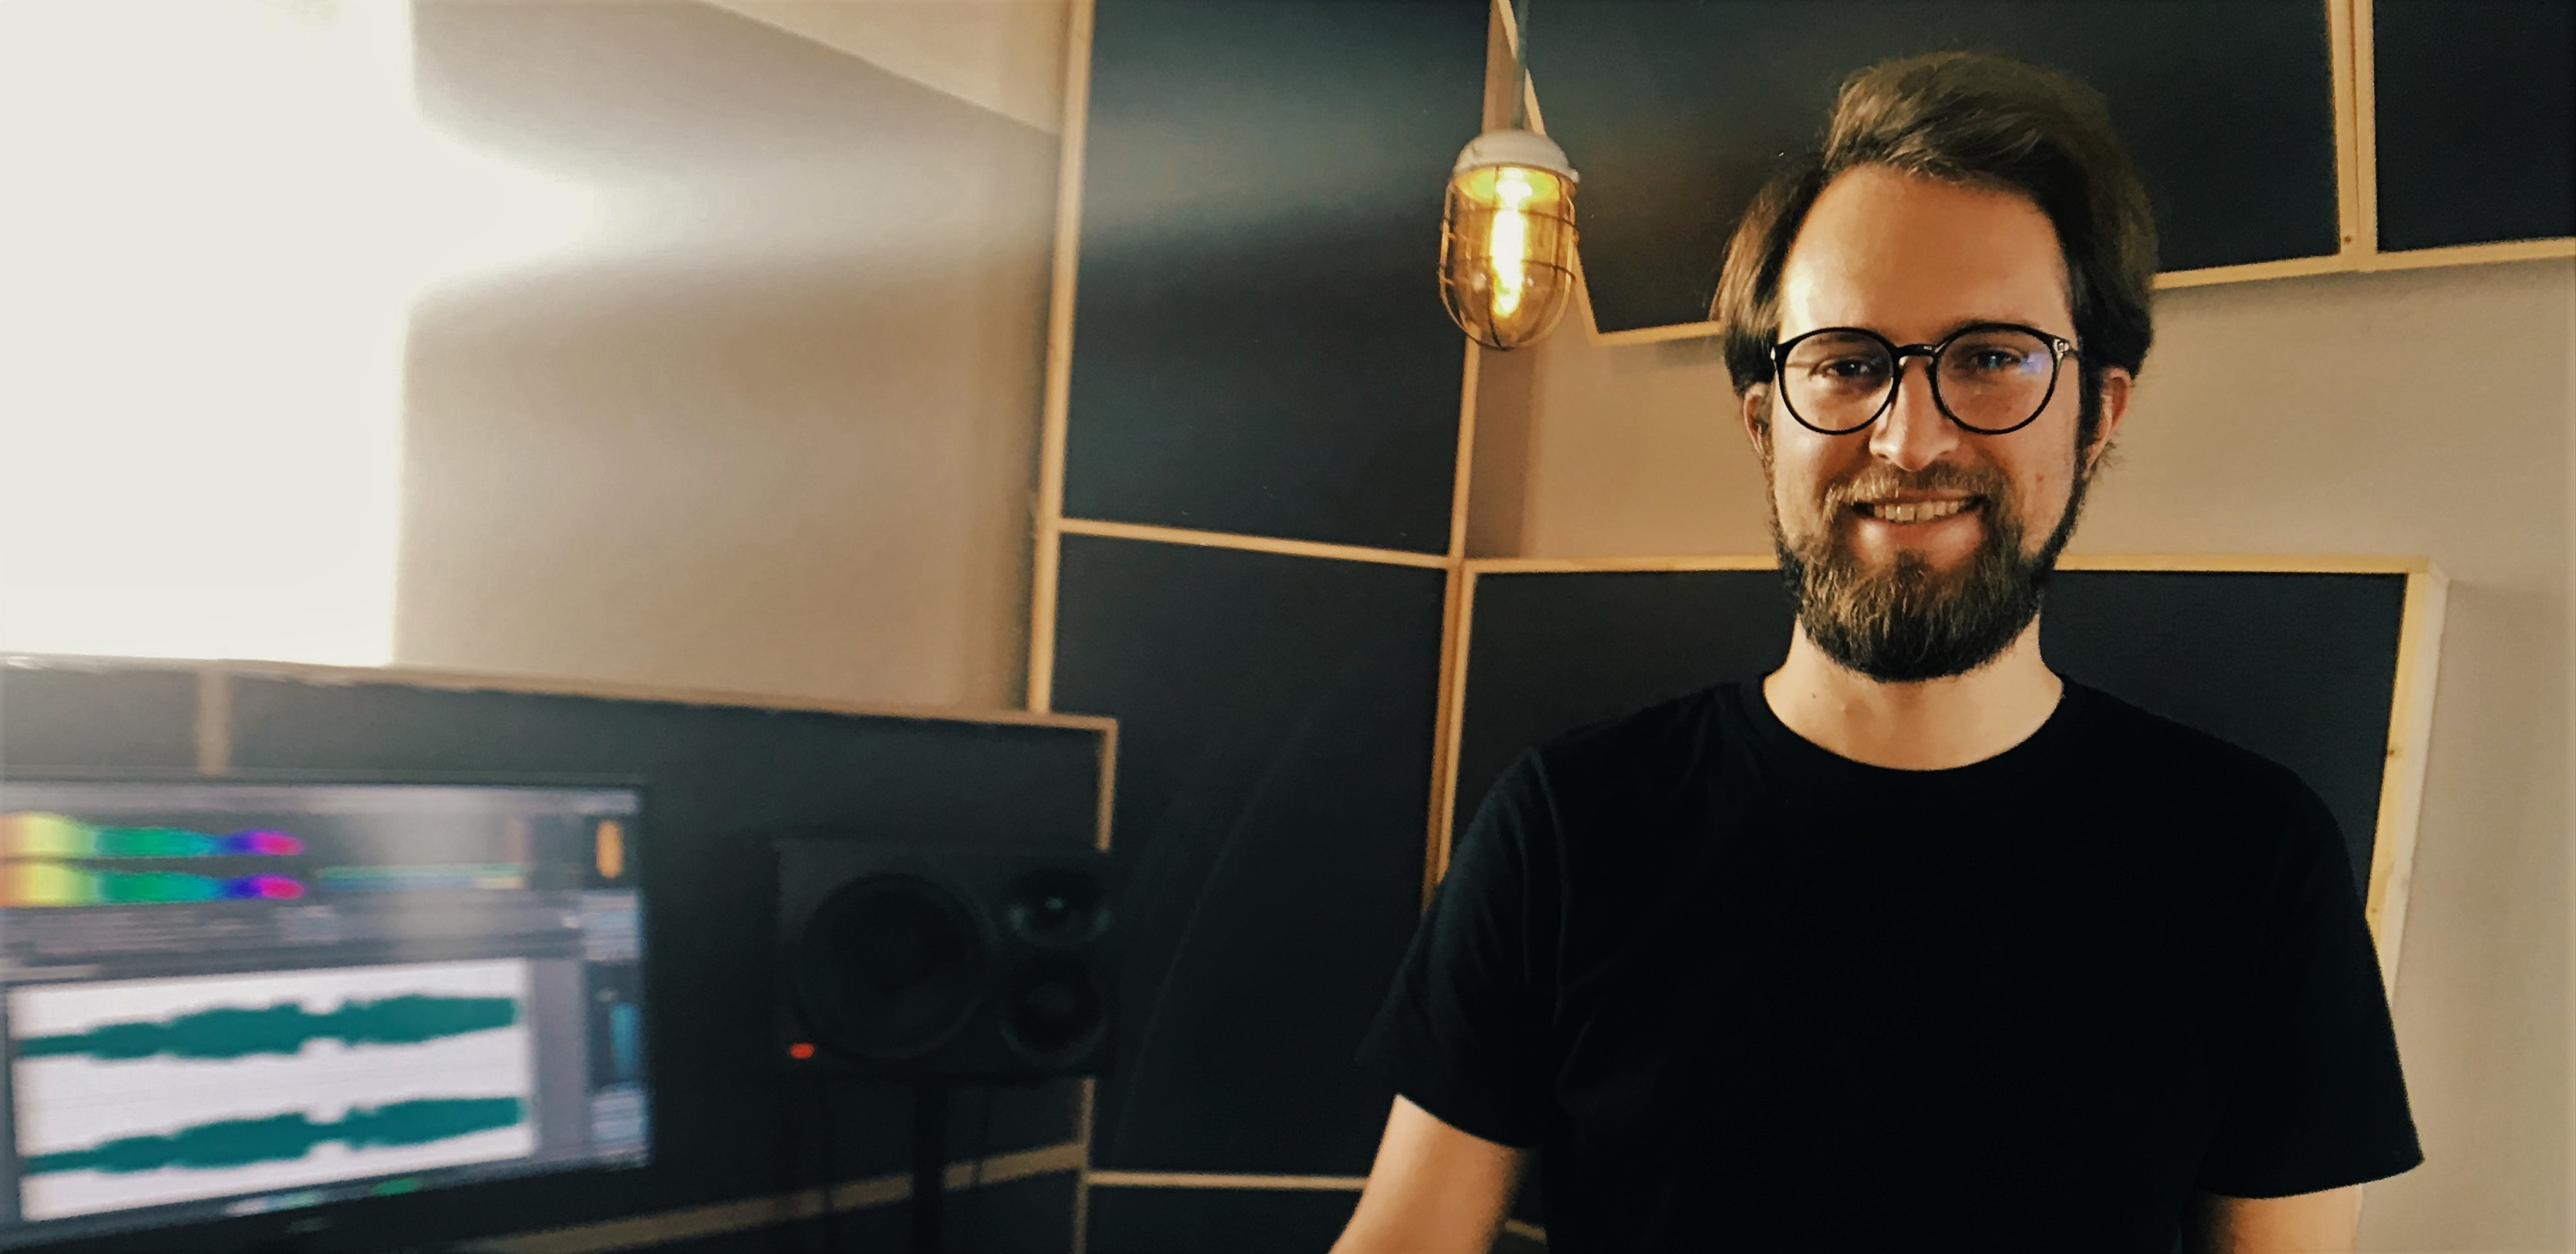 Music Tutor Philip Röder on His Game-Changing Pick Yourself Podcast